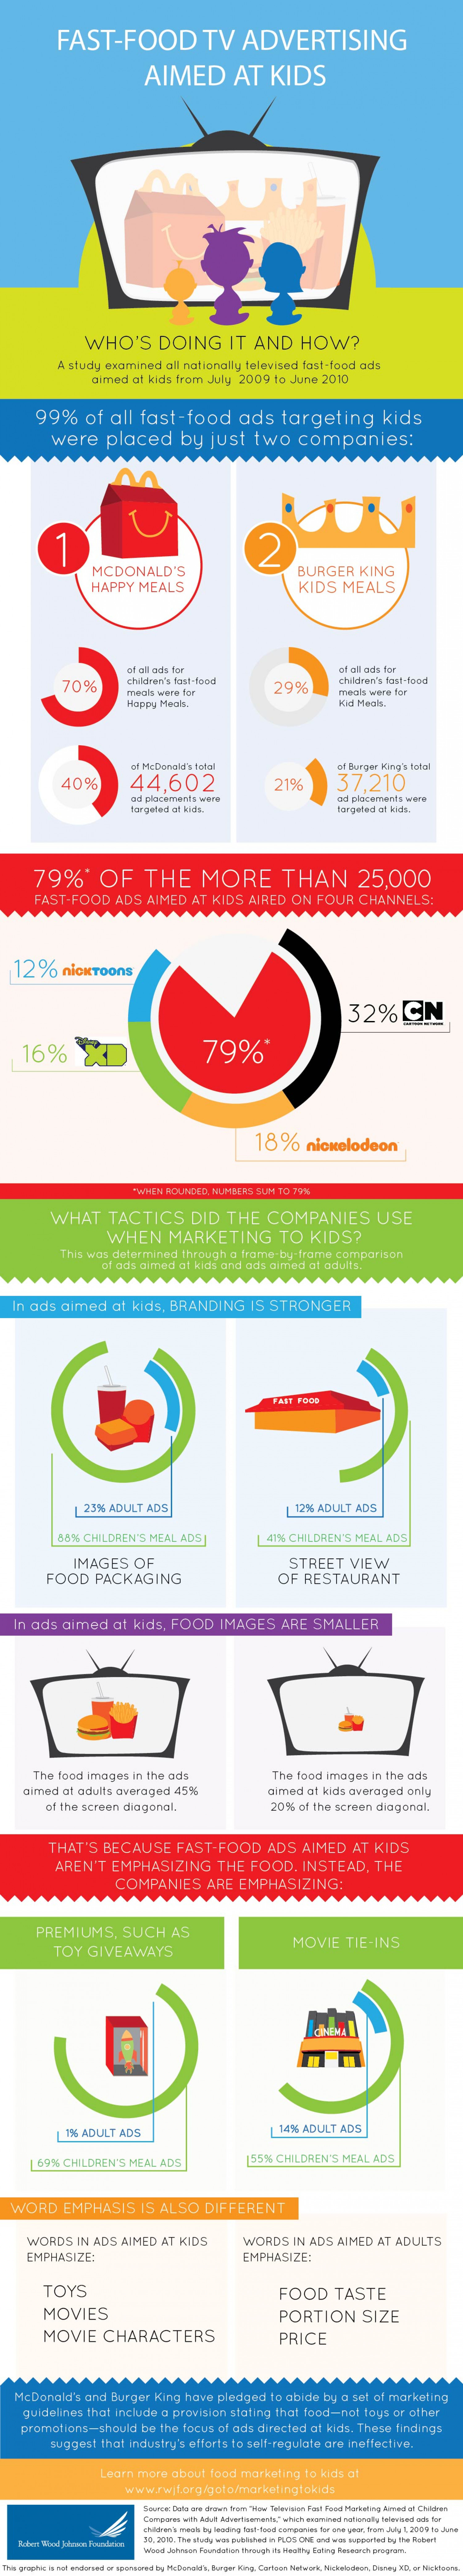 Fast-Food TV Advertising Aimed at Kids: Who's Doing it and How? Infographic